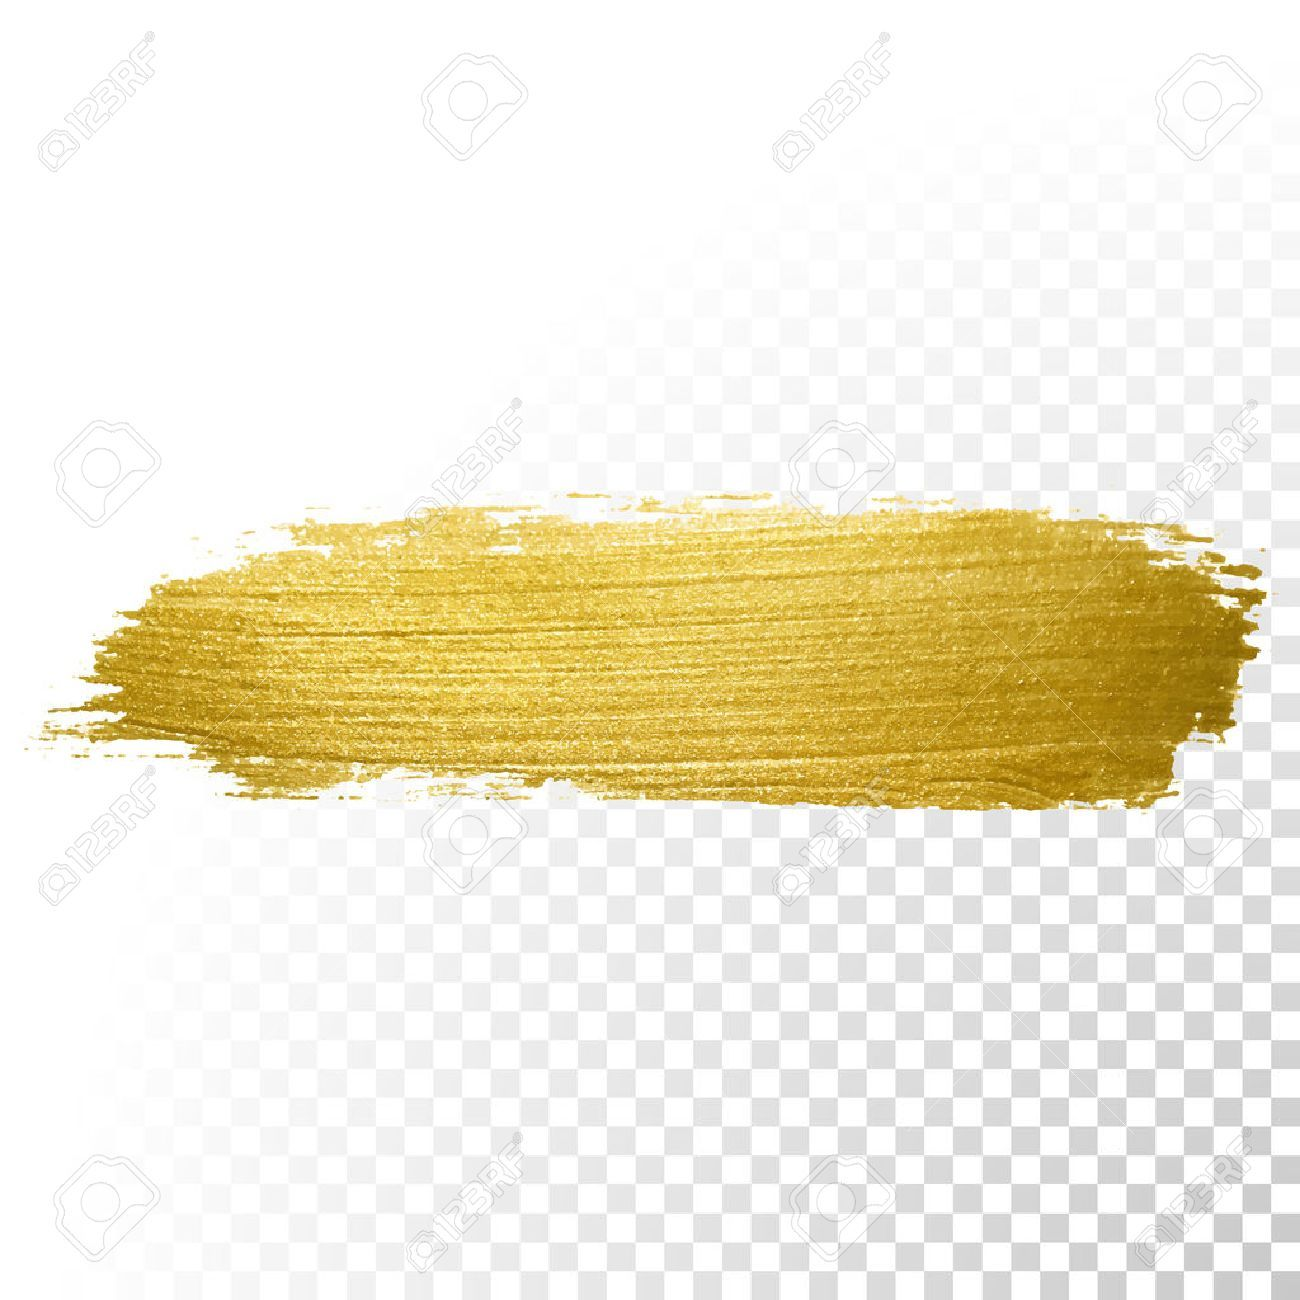 Vector Gold Paint Brush Stroke Abstract Gold Glittering Textured Royalty Free Cliparts Vectors And Stock Illus Paint Brush Art Gold Paint Brush Stroke Png